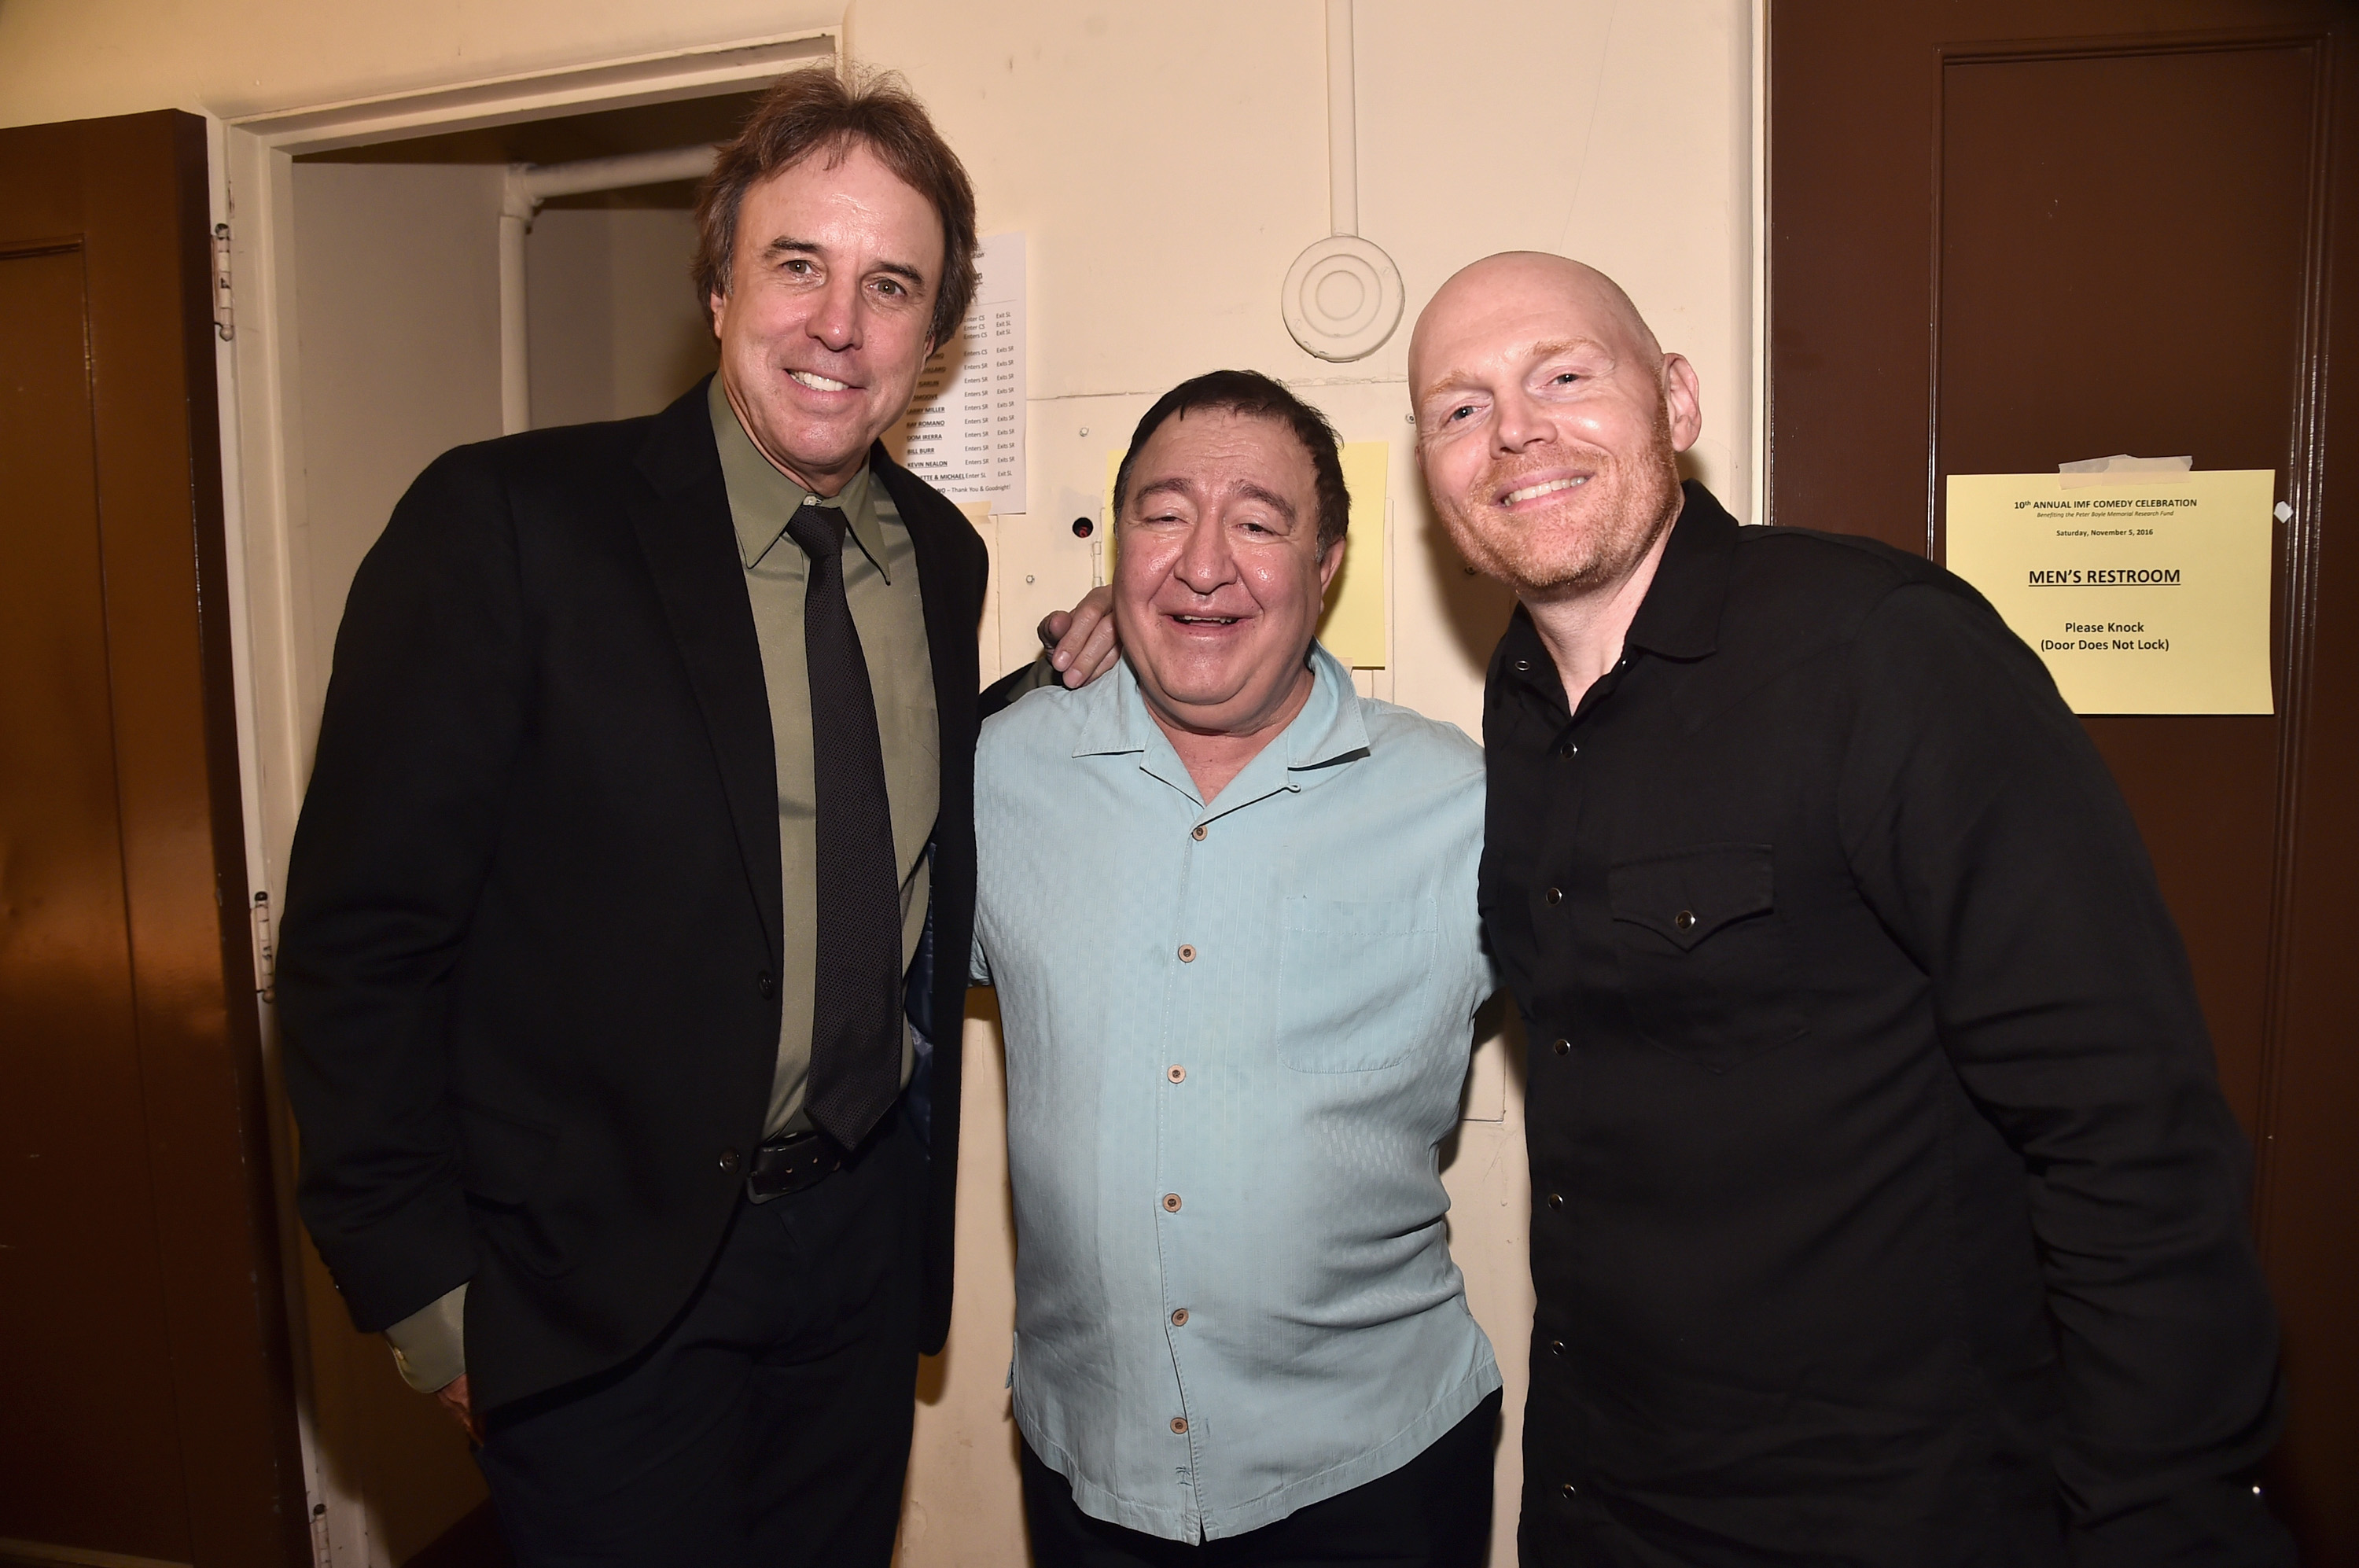 Comedians Kevin Nealon, Dom Irerra and Bill Burr attend the International Myeloma Foundation 10th Annual Comedy Celebration.Photo by Alberto E. Rodriguez/Getty Images for International Myeloma Foundation.